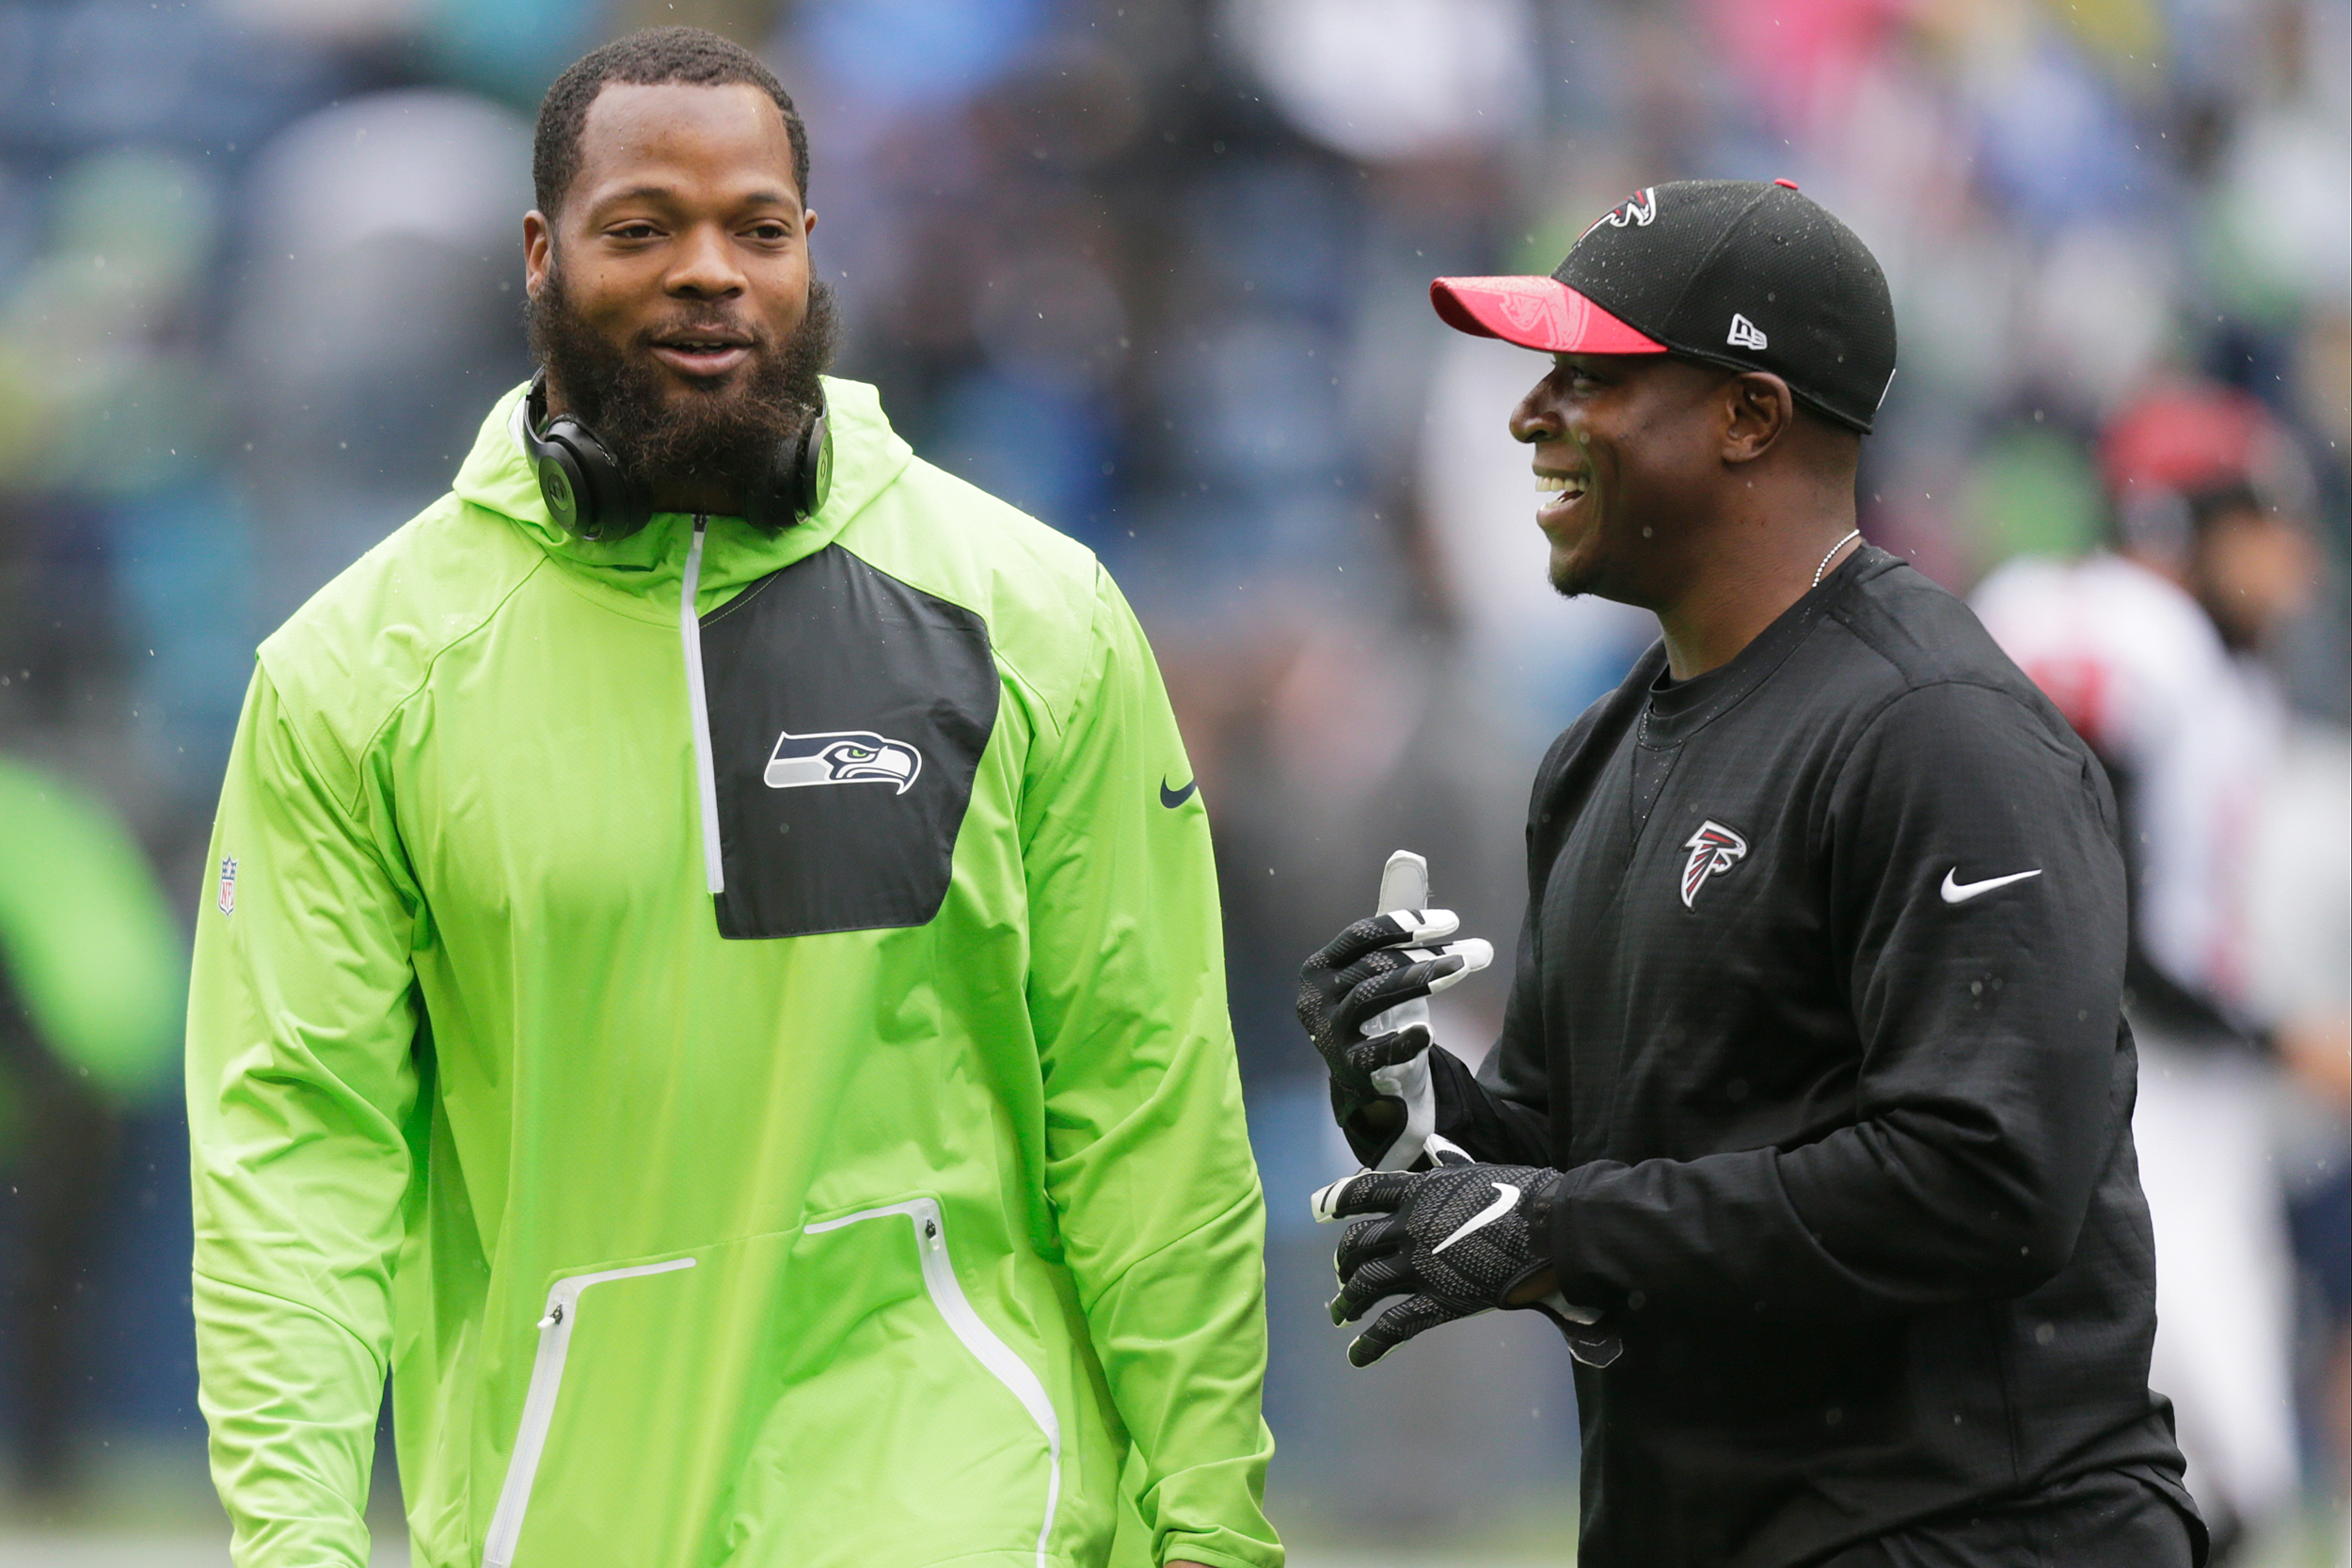 Seattle Seahawks defensive end Michael Bennett, left, talks with Raheem Morris, Atlanta Falcons assistant head coach and and wide receivers coach, before an NFL football game, Sunday, Oct. 16, 2016, in Seattle.